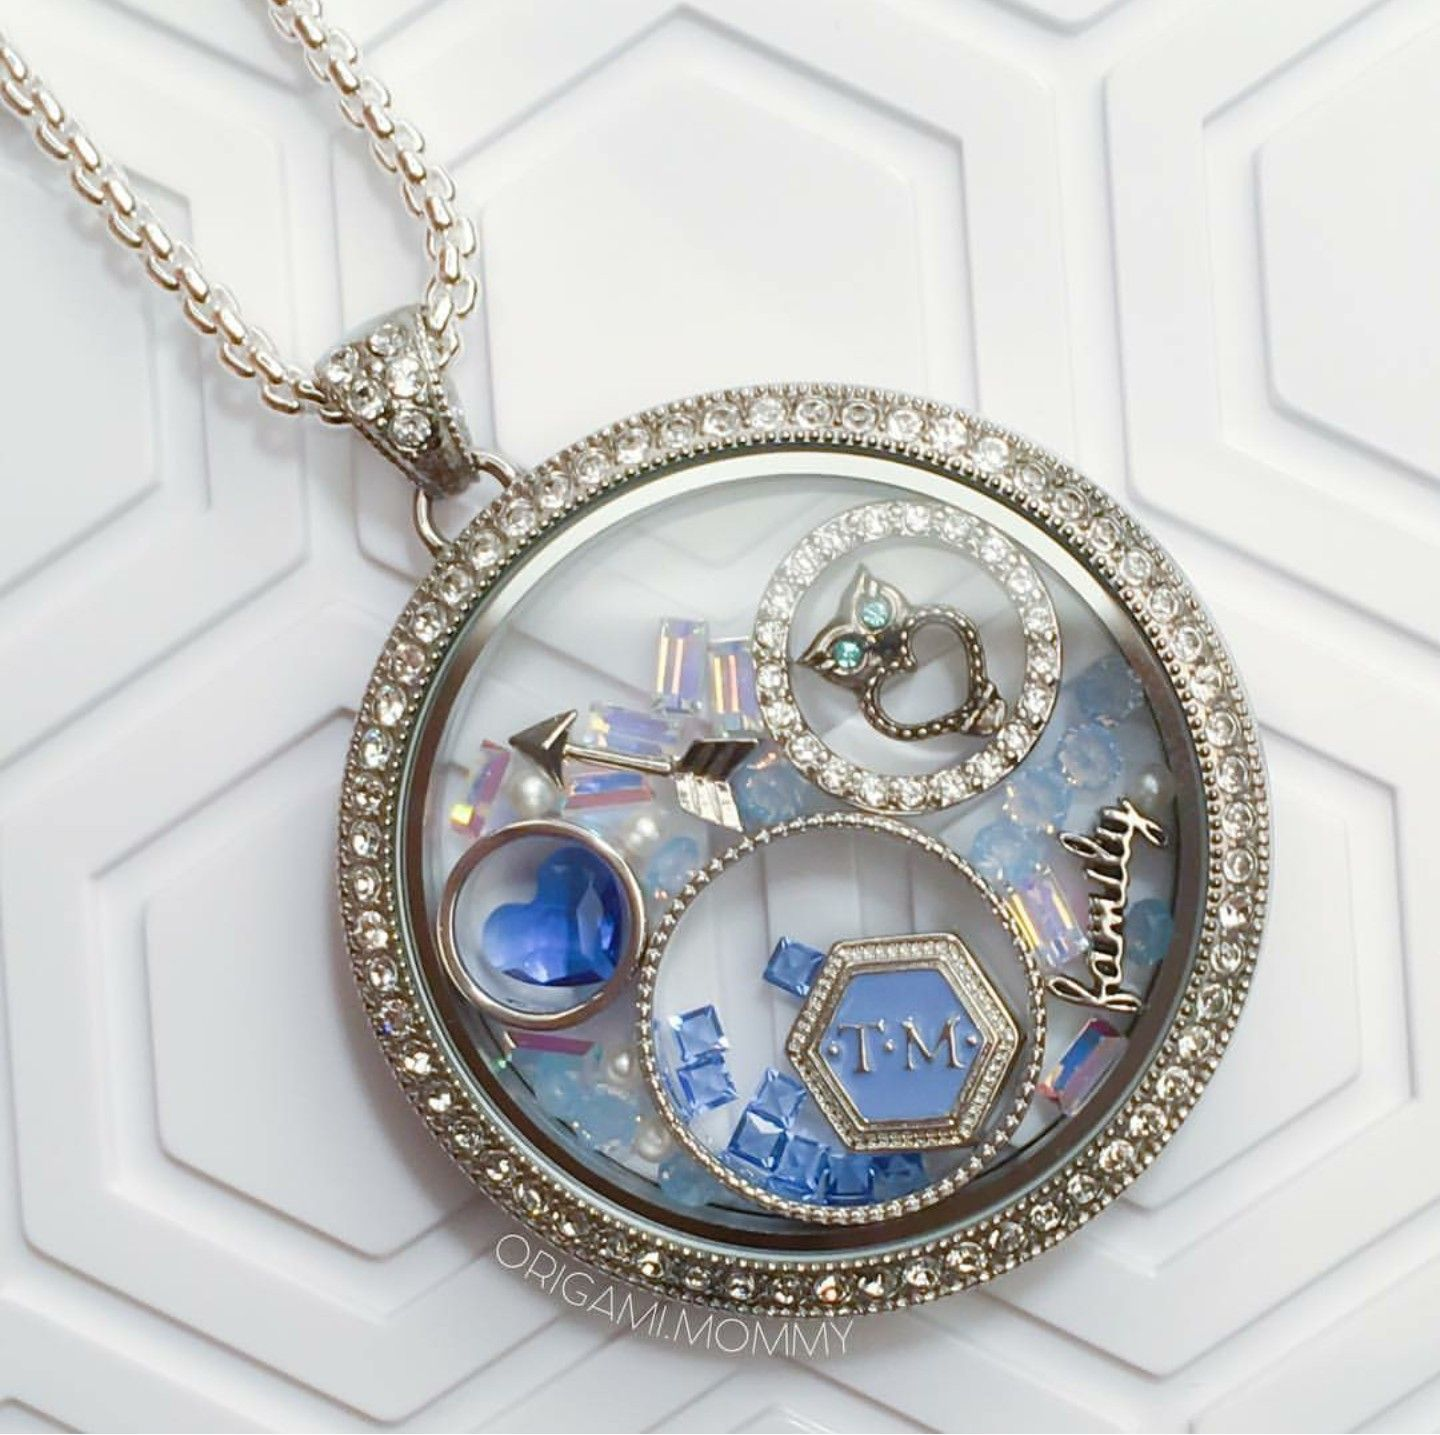 fob lockets vintage estate pocket filled or gemstones slider antique victorian with gold chain necklace watch find product locket